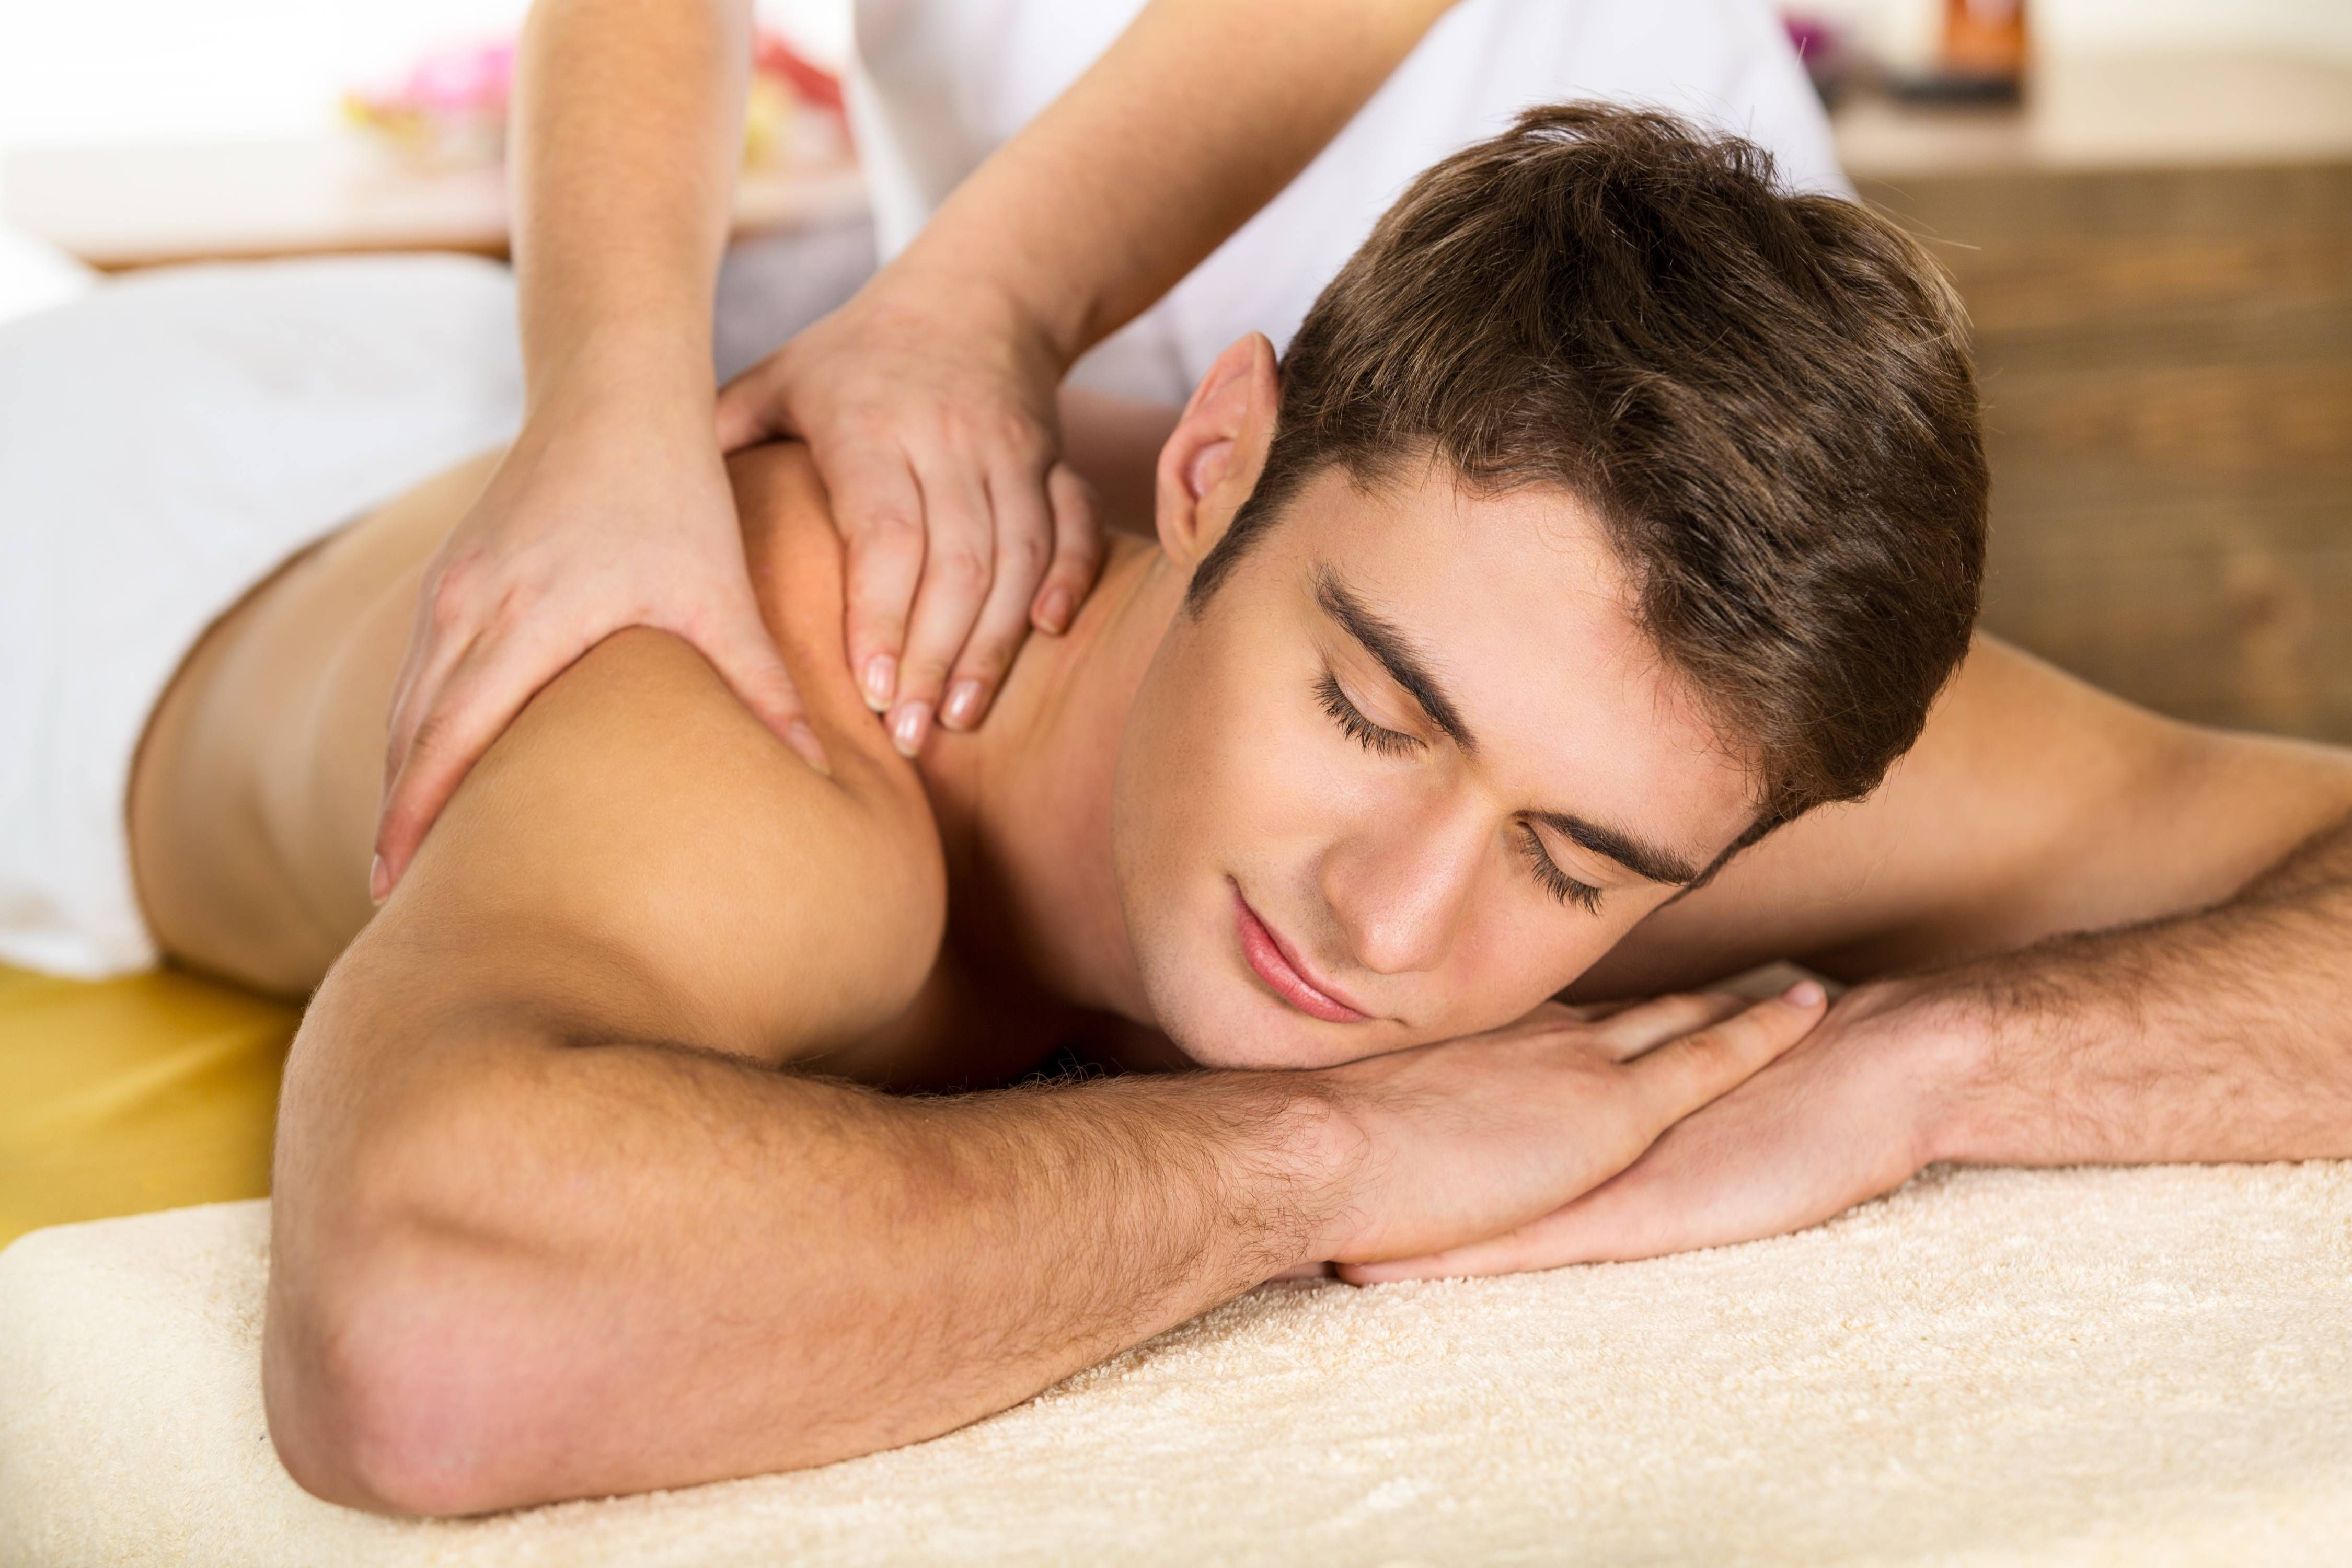 Conditions Chiropractic Massage Is Helpful For